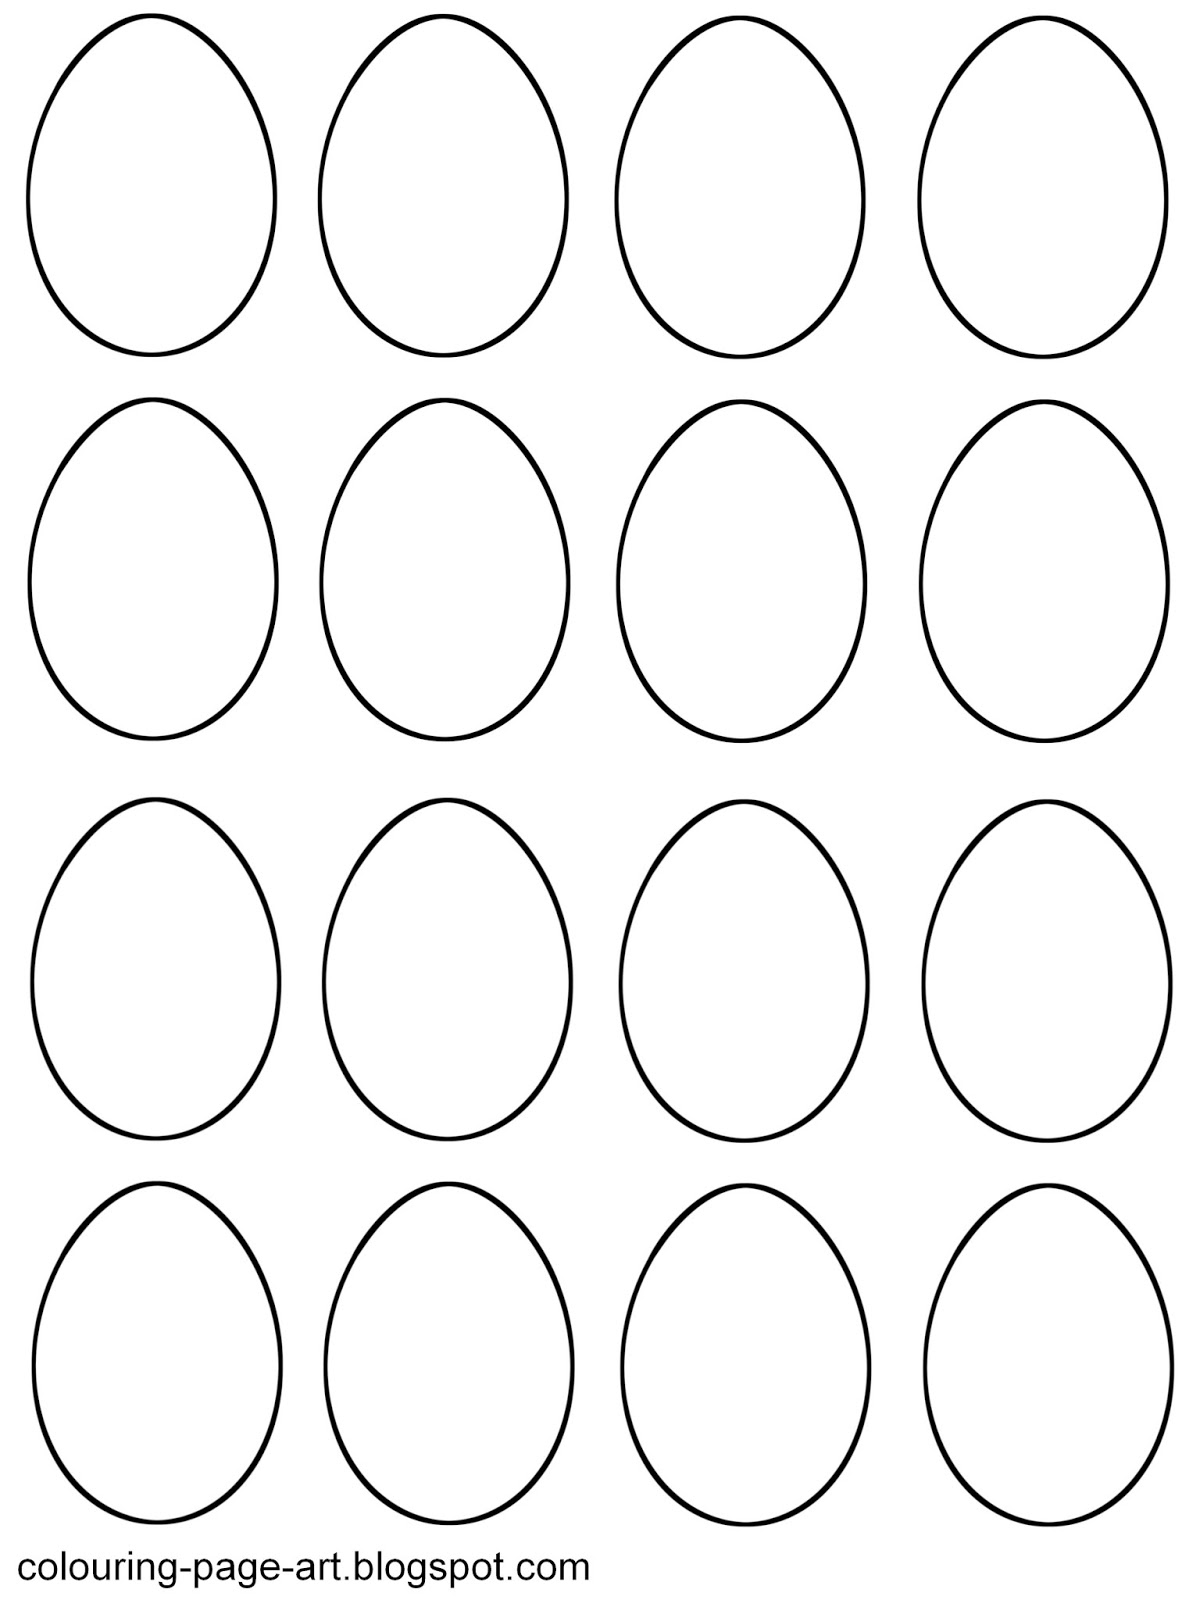 Blank Easter Egg Templates